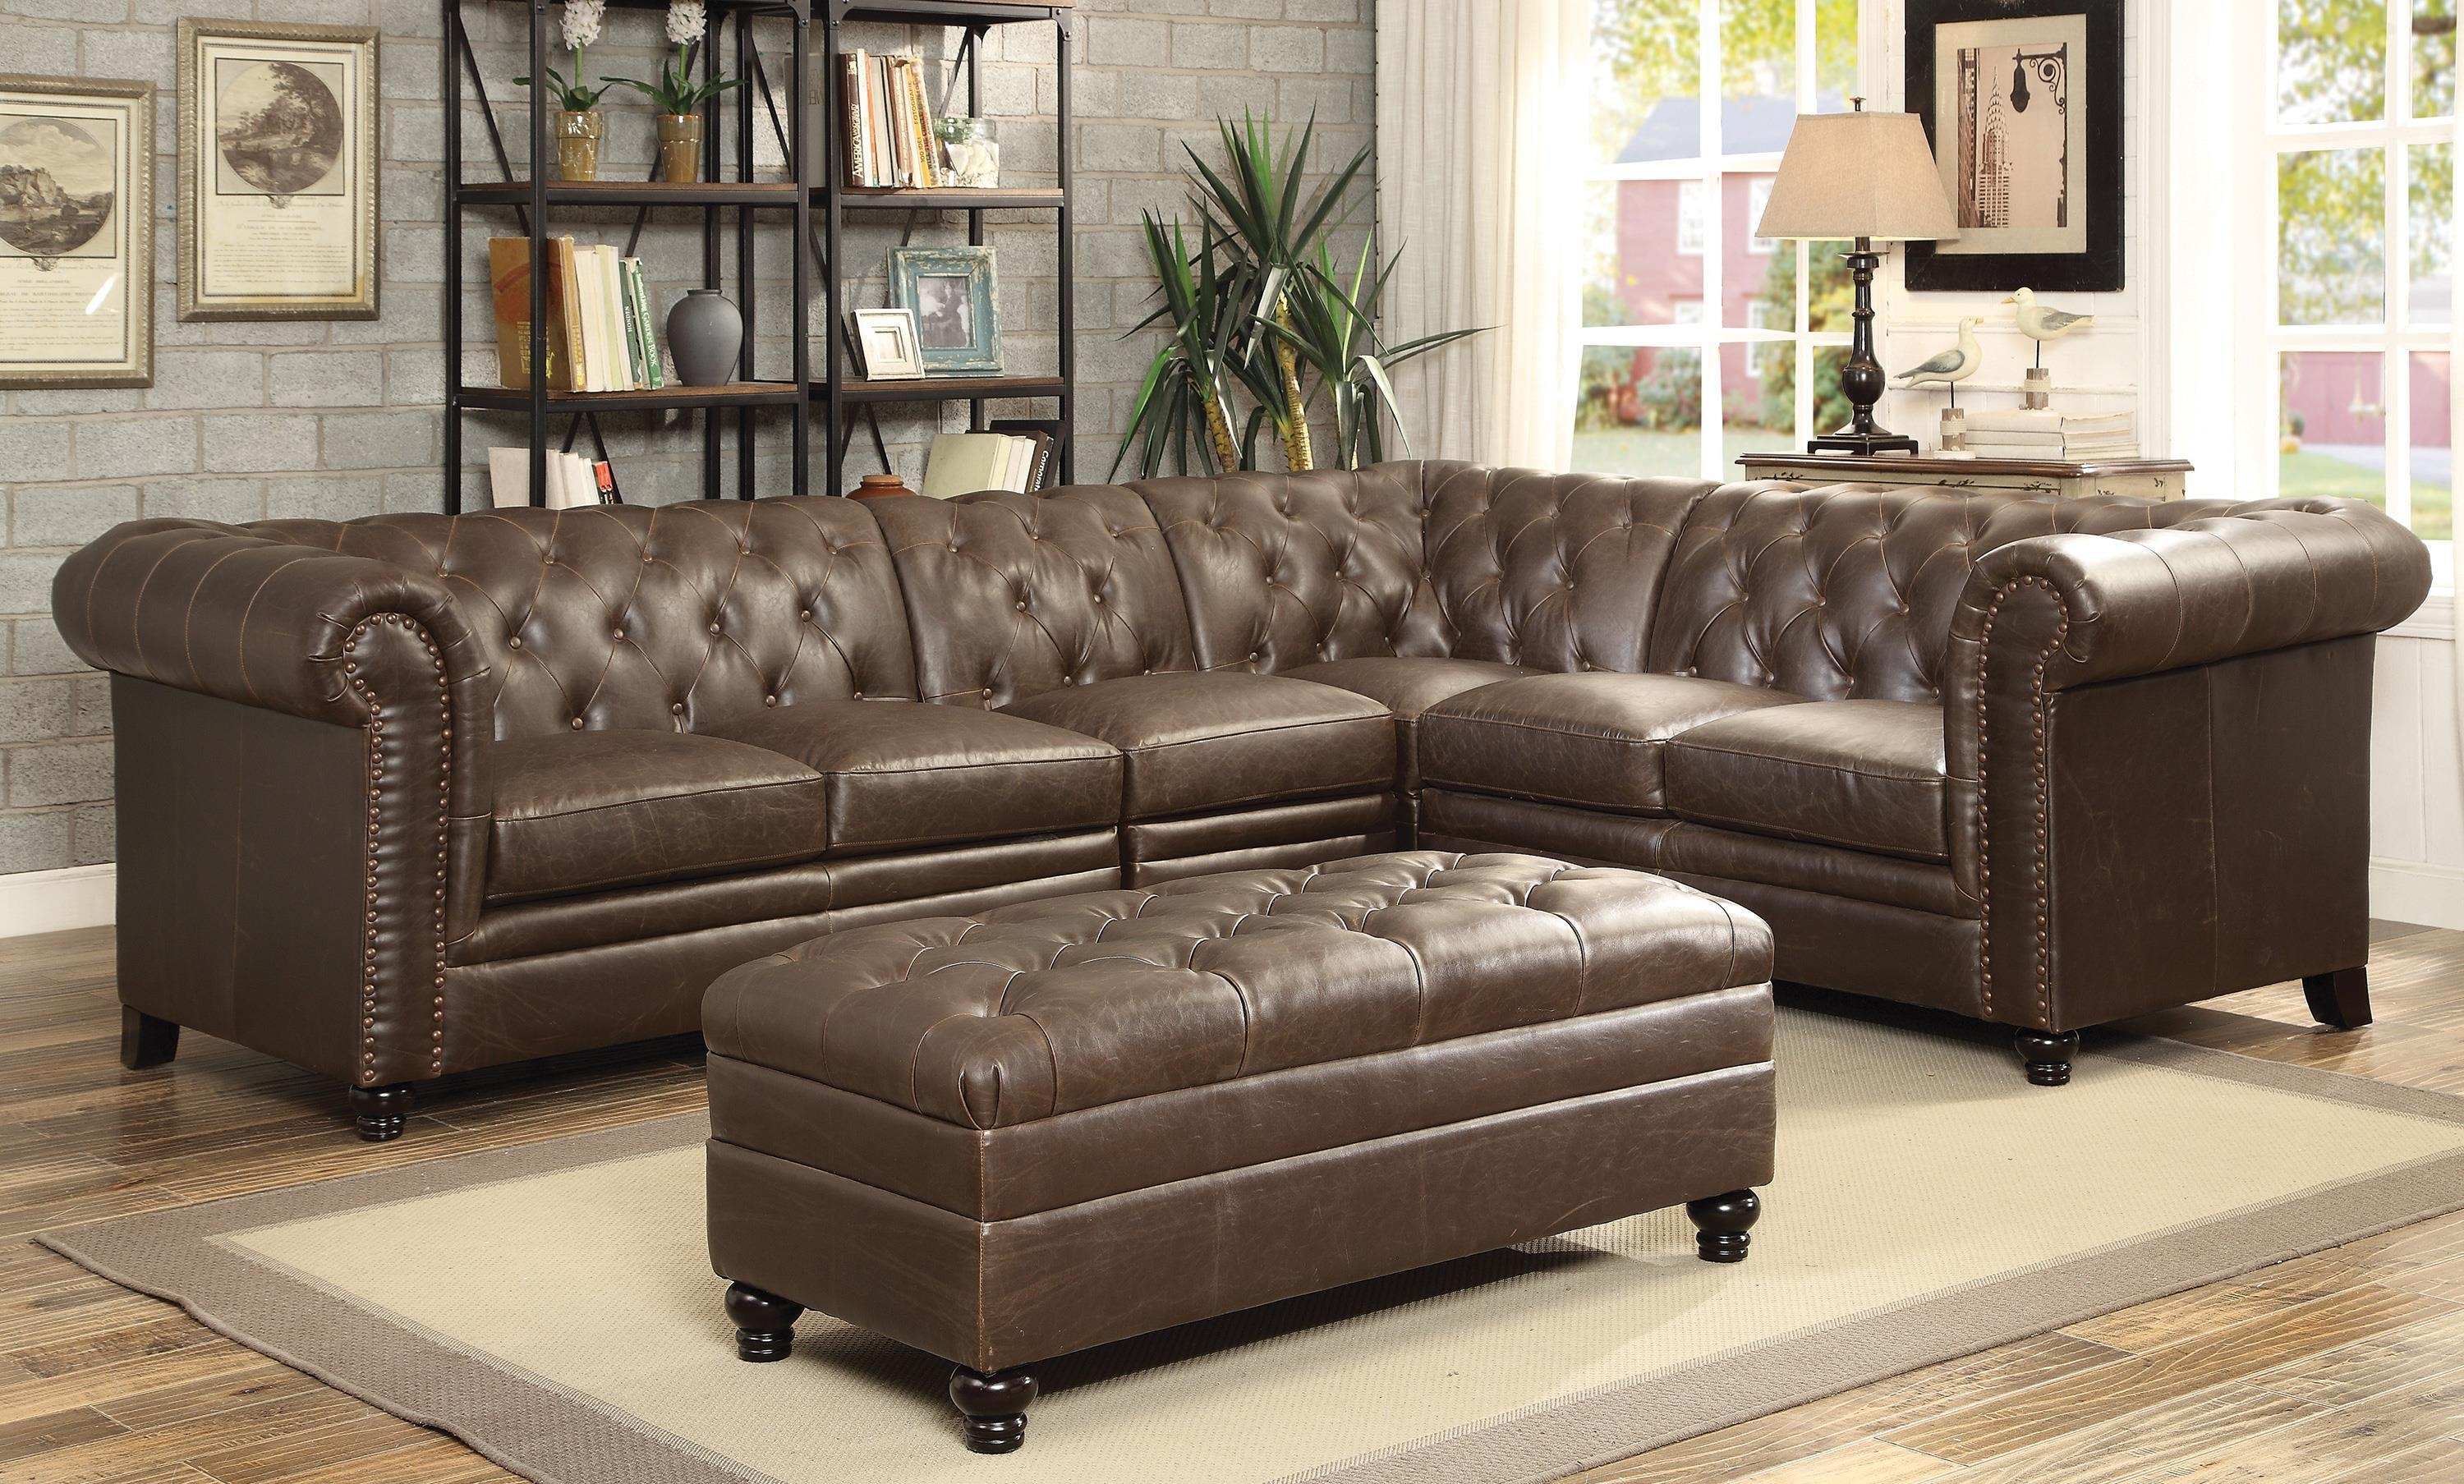 Sofa: Sectional Sleeper | Tufted Sectional Sofa | Tufted Sectional Throughout Tufted Sectional Sofa Chaise (View 4 of 20)